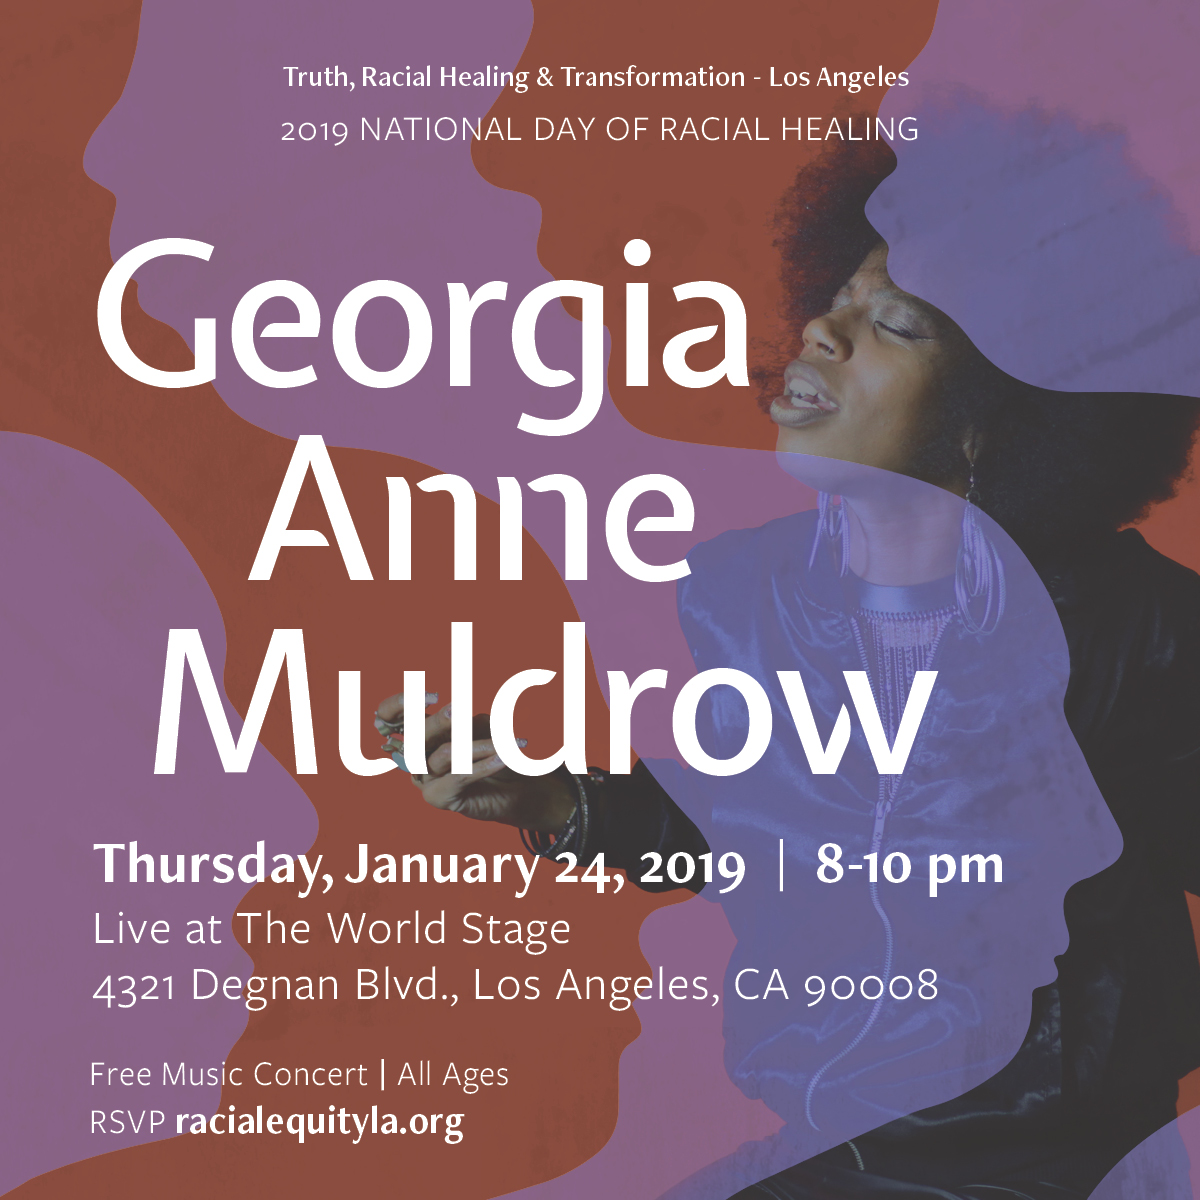 Flyer for Georgia Anne Muldrow Concert